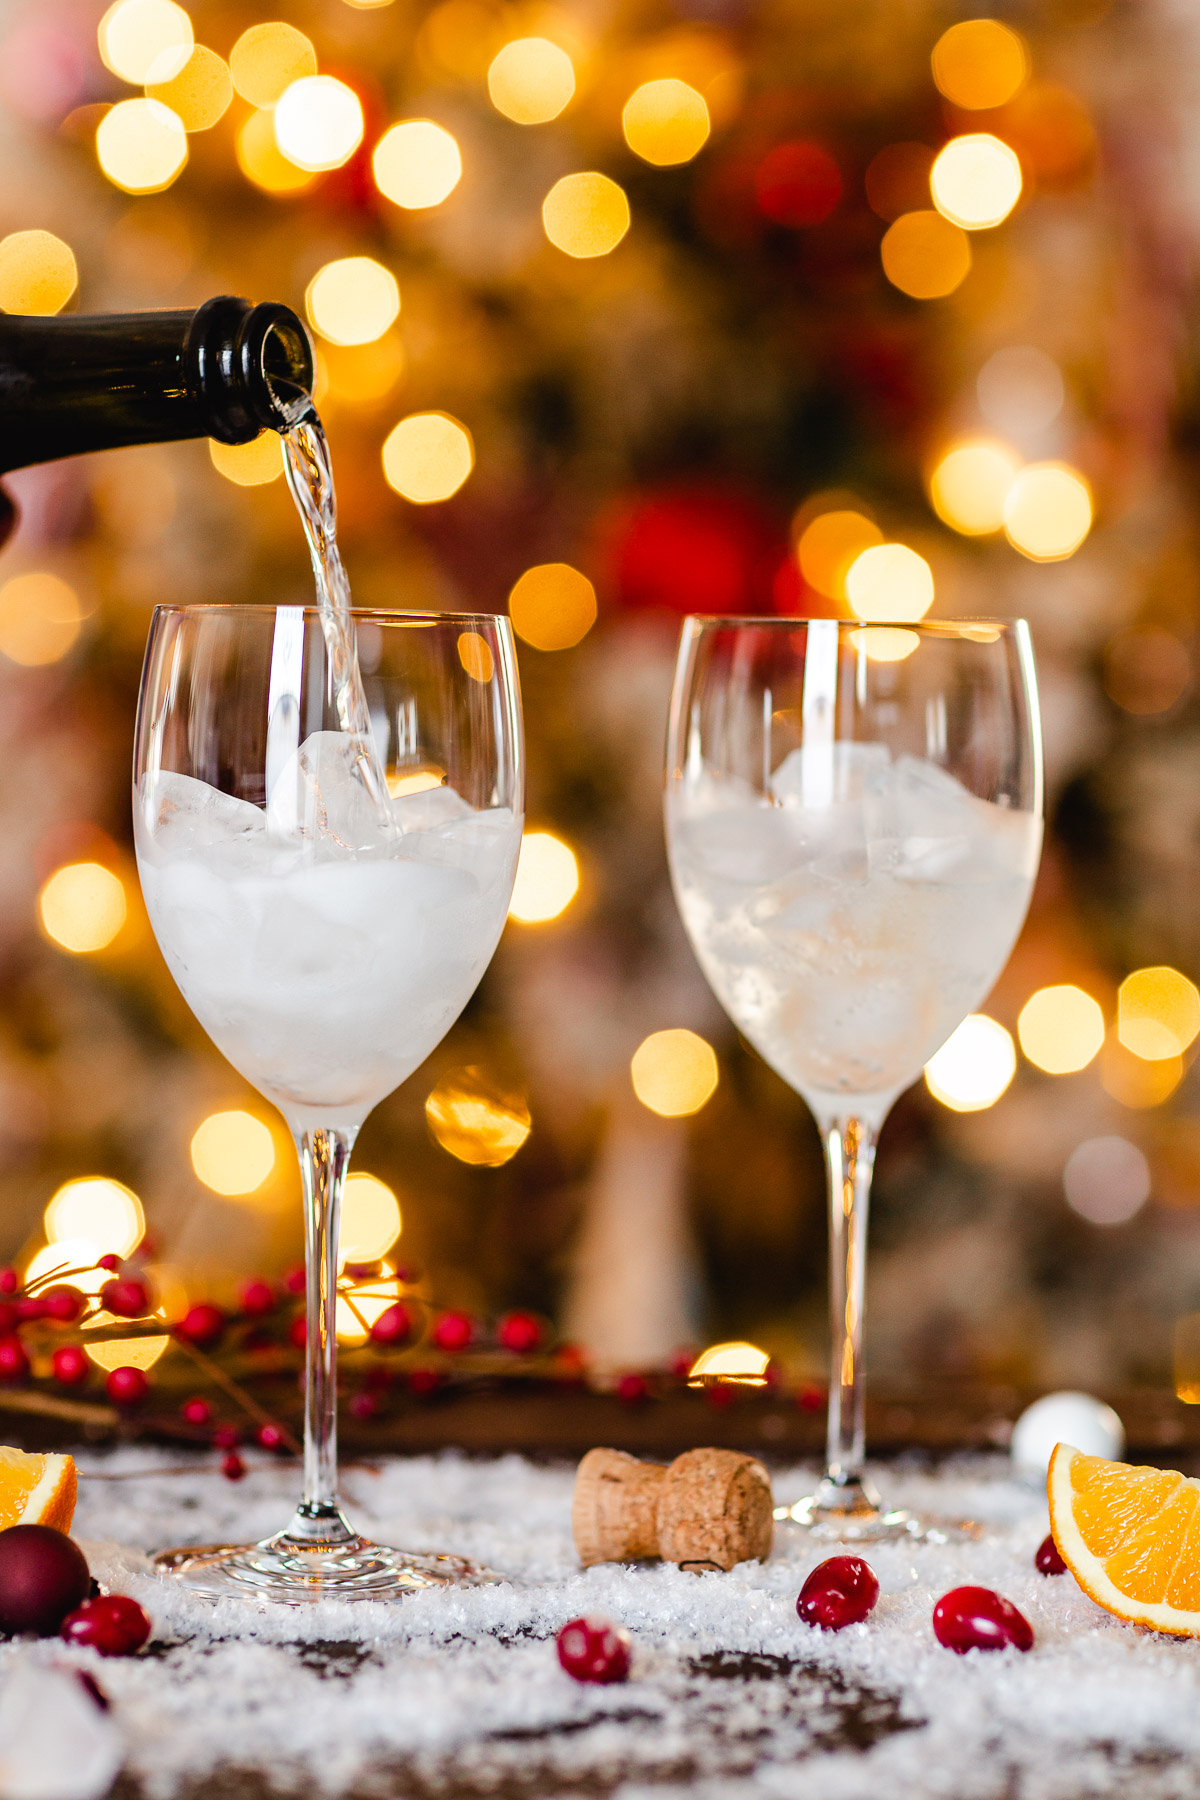 How to make Winter Holiday Christmas Spritzer recipe with cranberry juice Ricetta SPRITZ di NATALE con Aperol Prosecco succo di arance cranberry mirtilli rossi fatto in casa